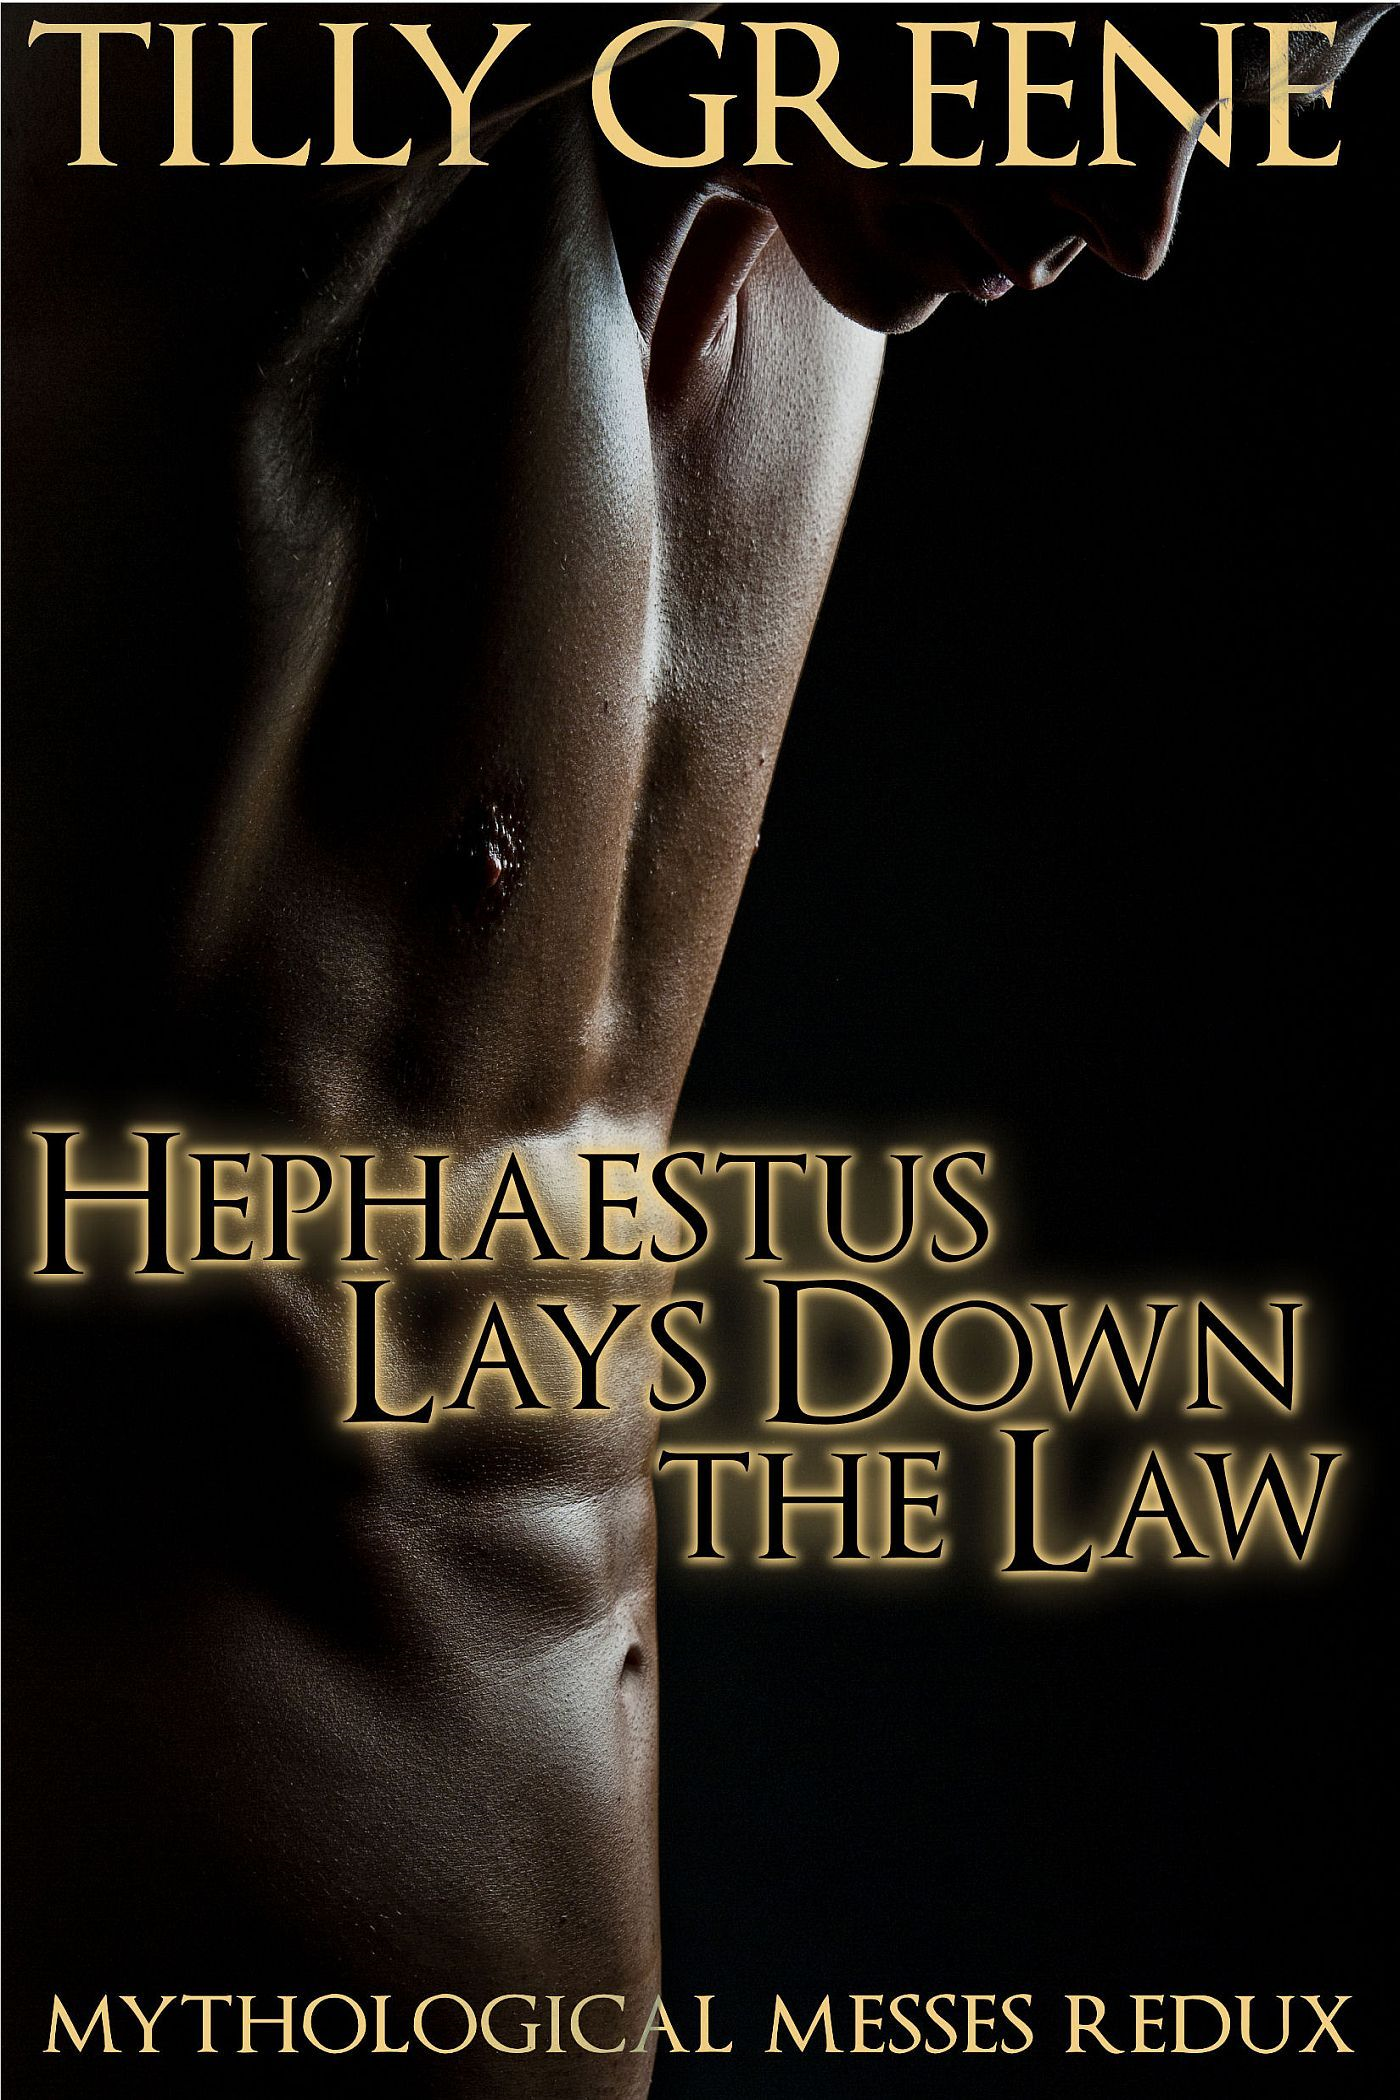 Hephaestus Lays Down the Law